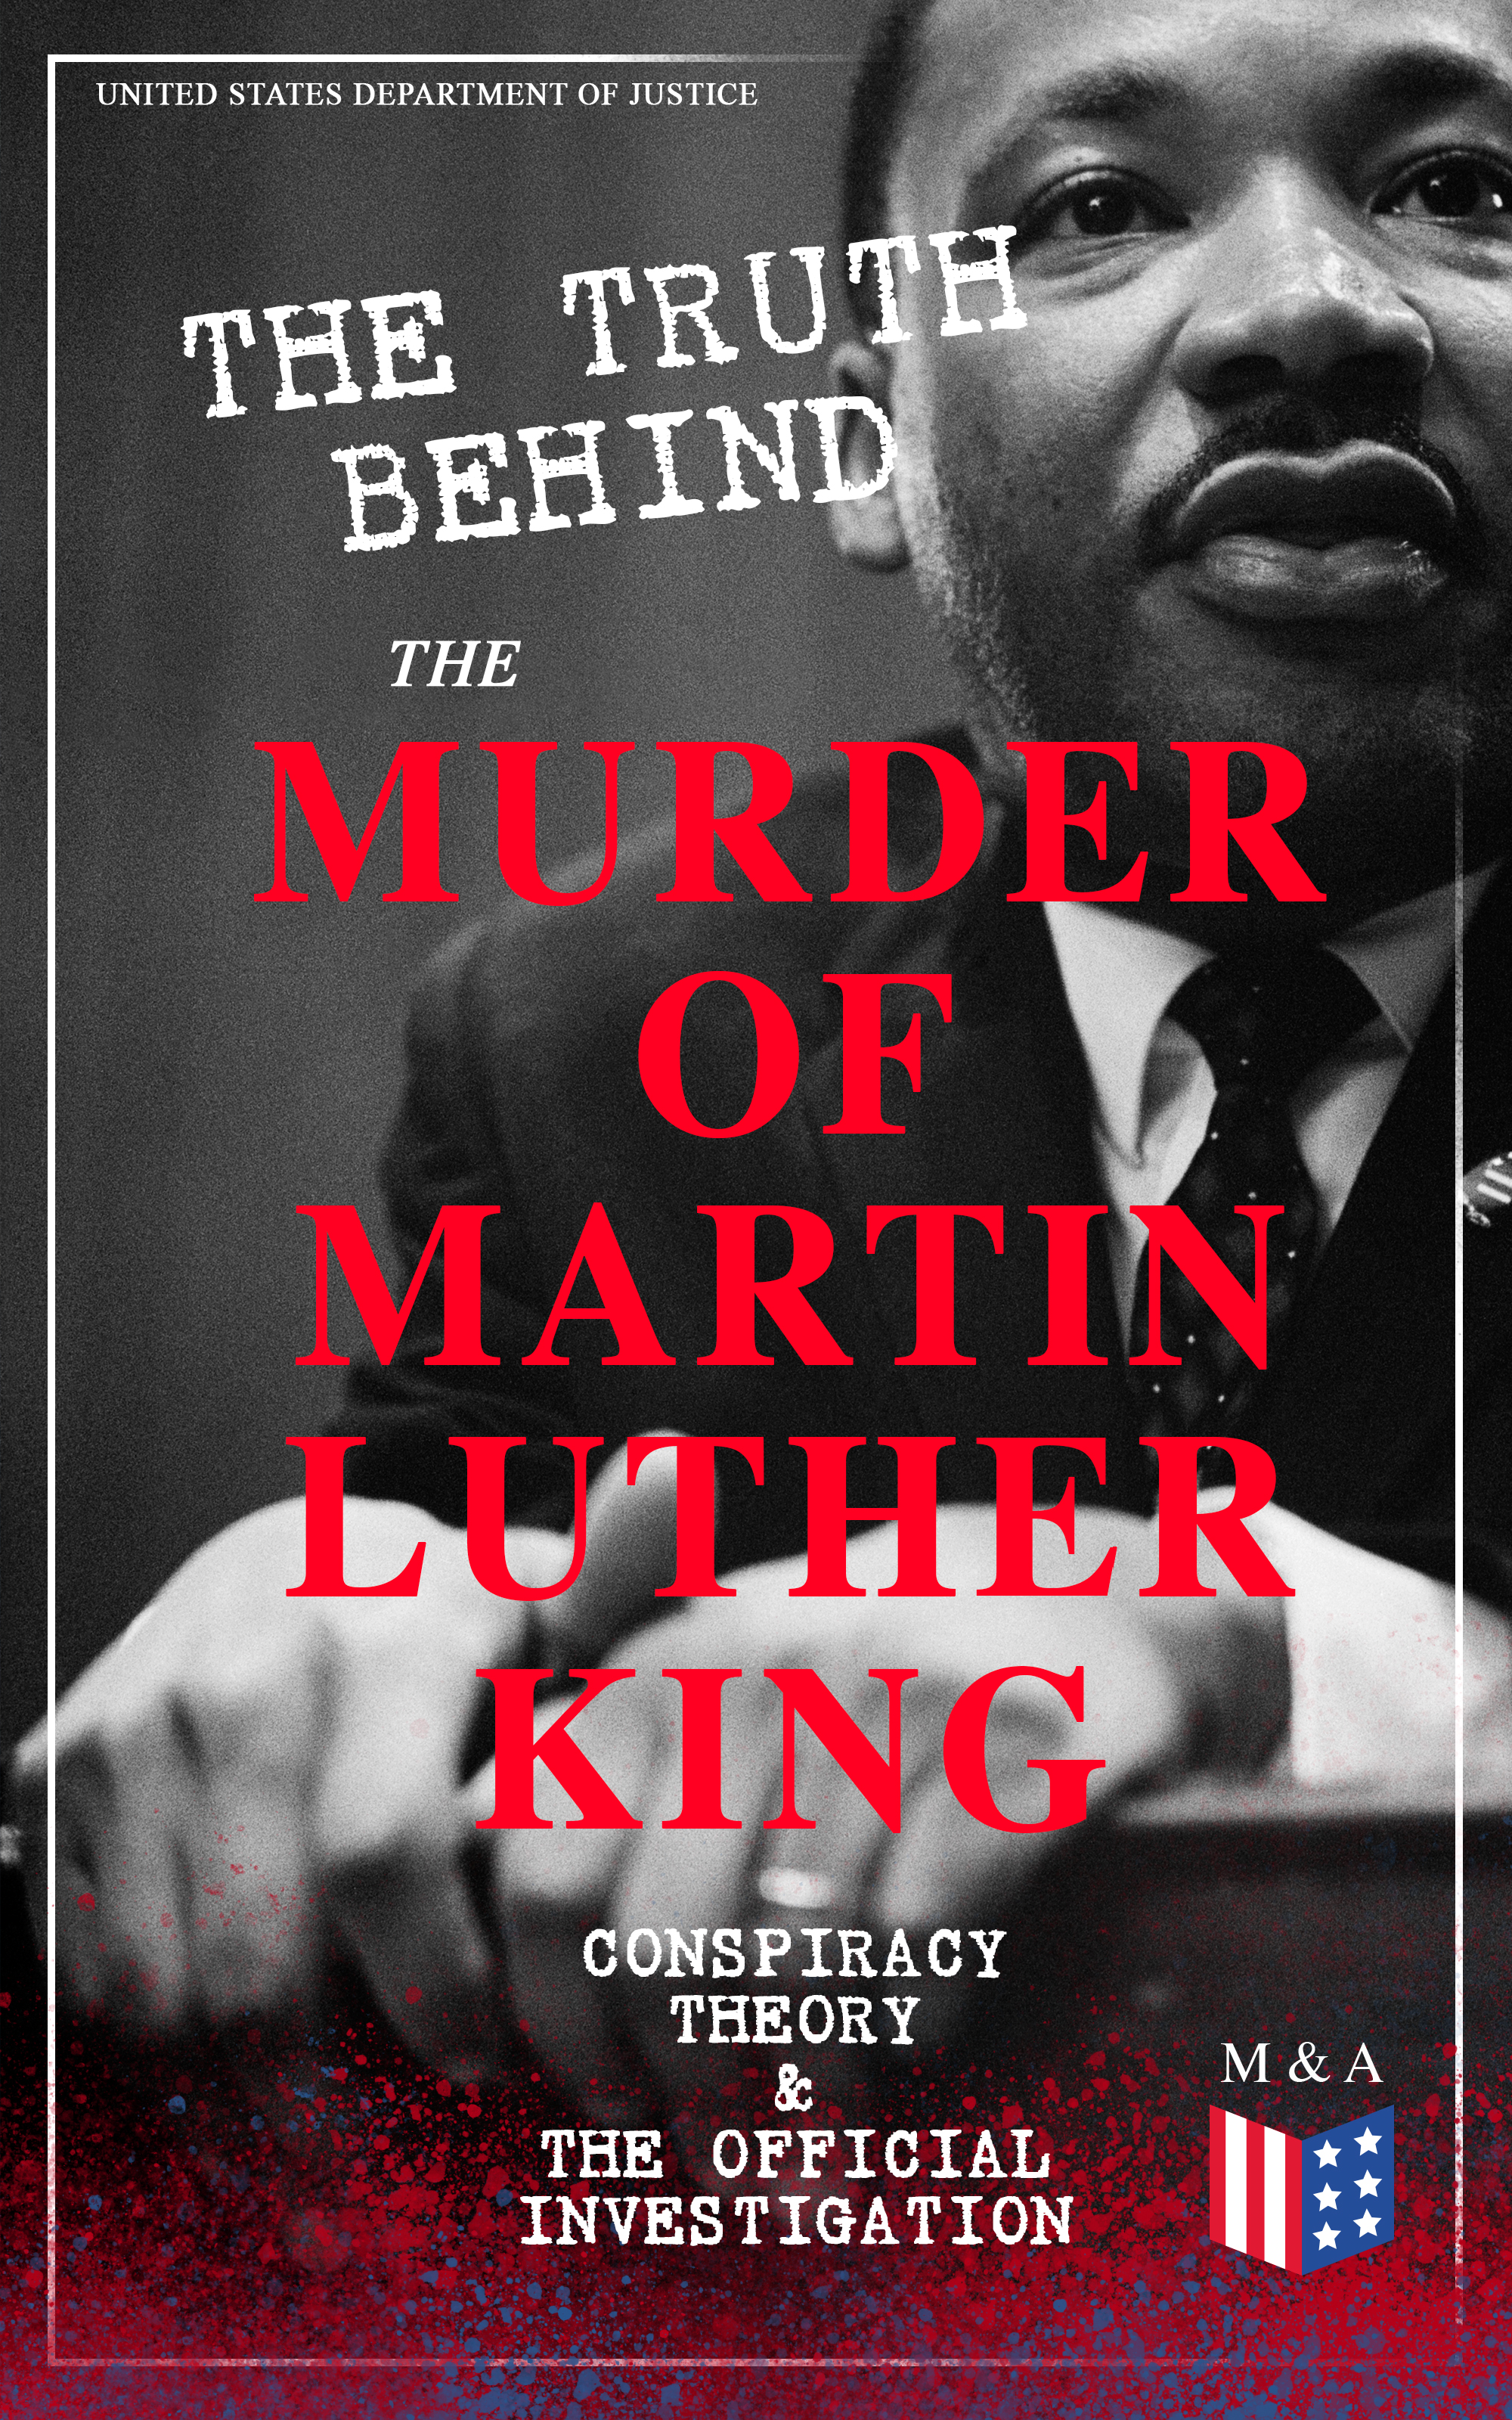 United States Department of Justice The Truth Behind the Murder of Martin Luther King – Conspiracy Theory & The Official Investigation martin luther king jr and the march on washington